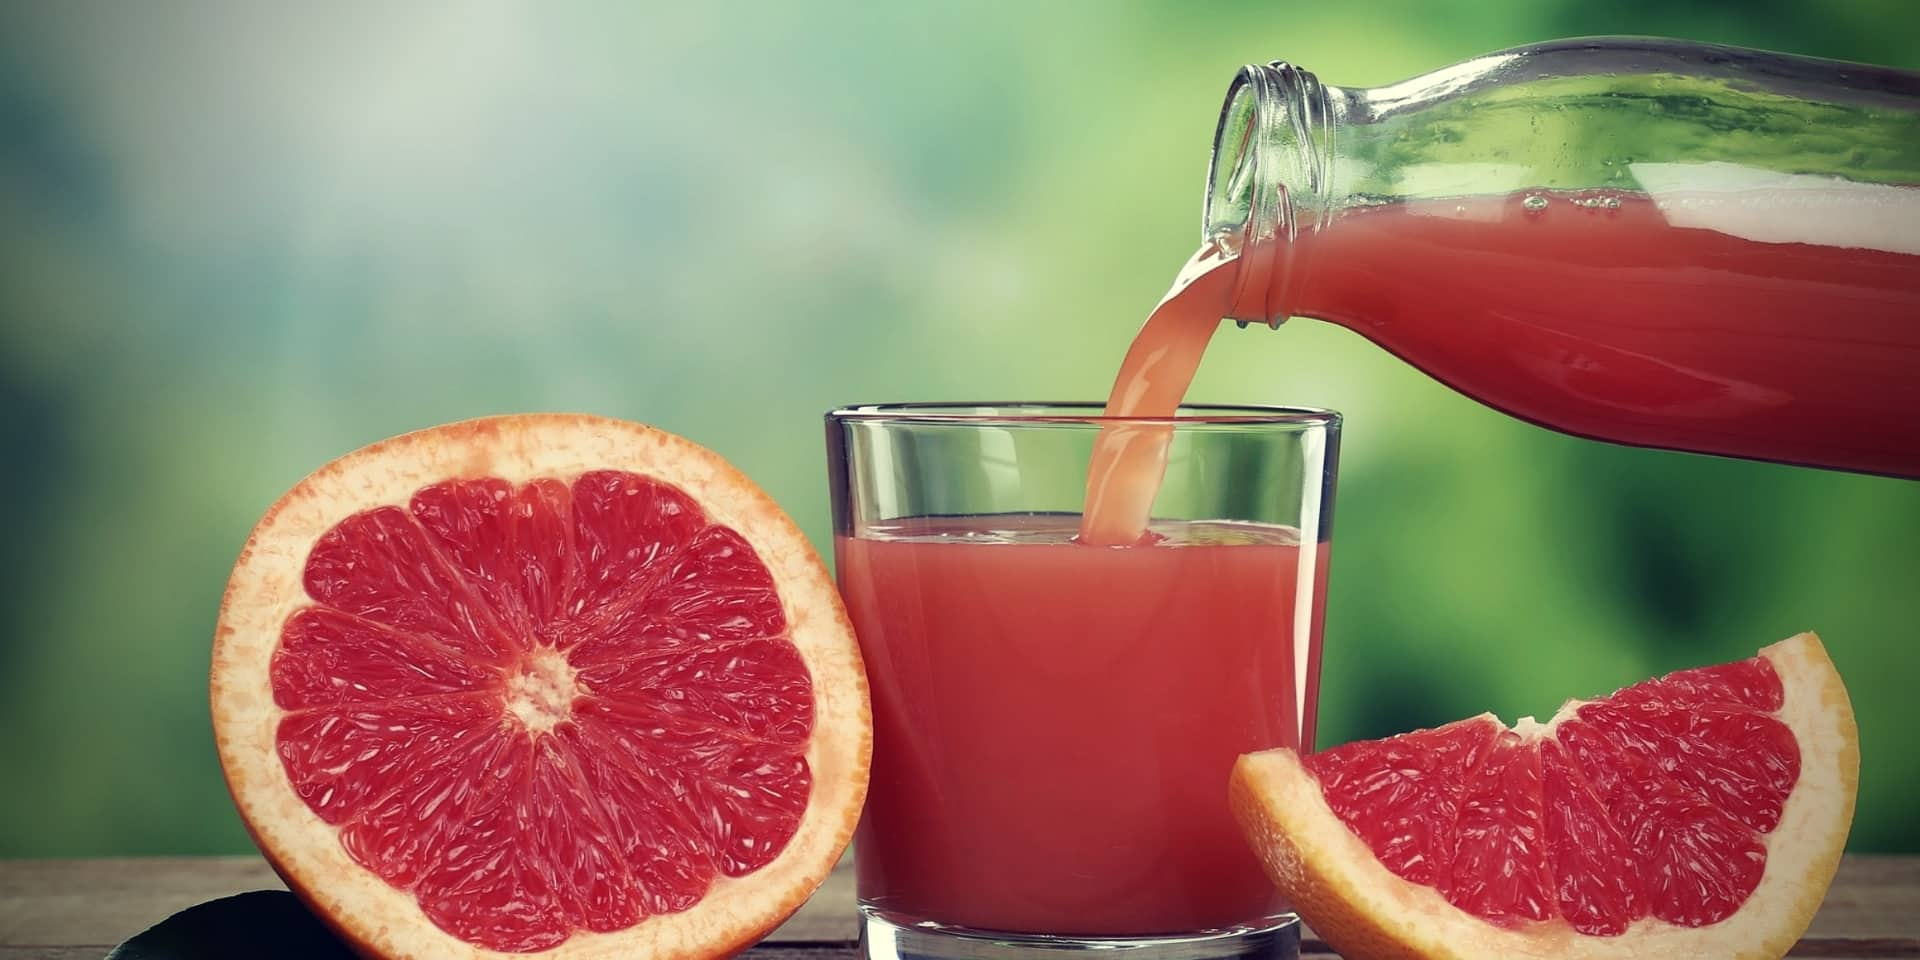 Grapefruit Juice and Kratom Grapefruit juice pouring into a glass